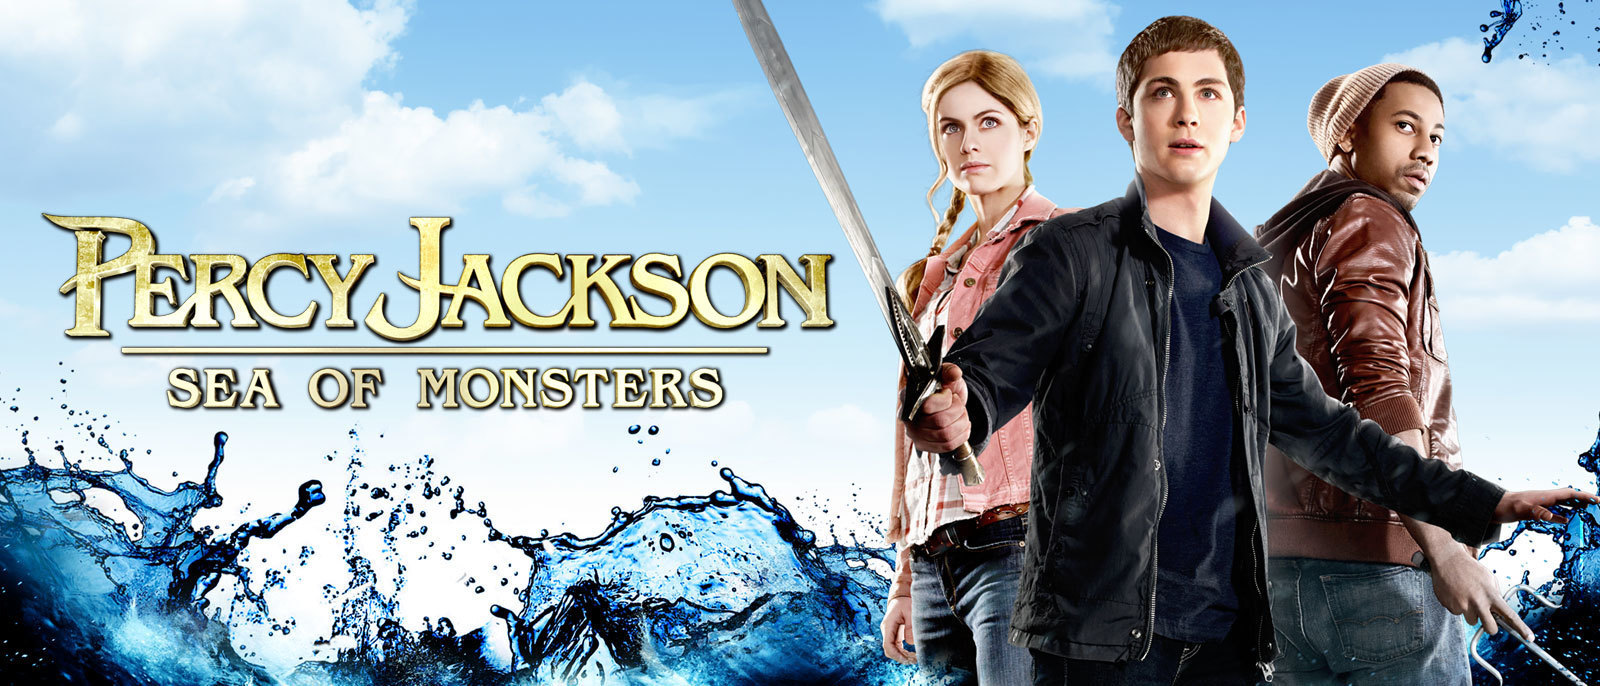 Percy Jackson: Sea of Monsters Hero